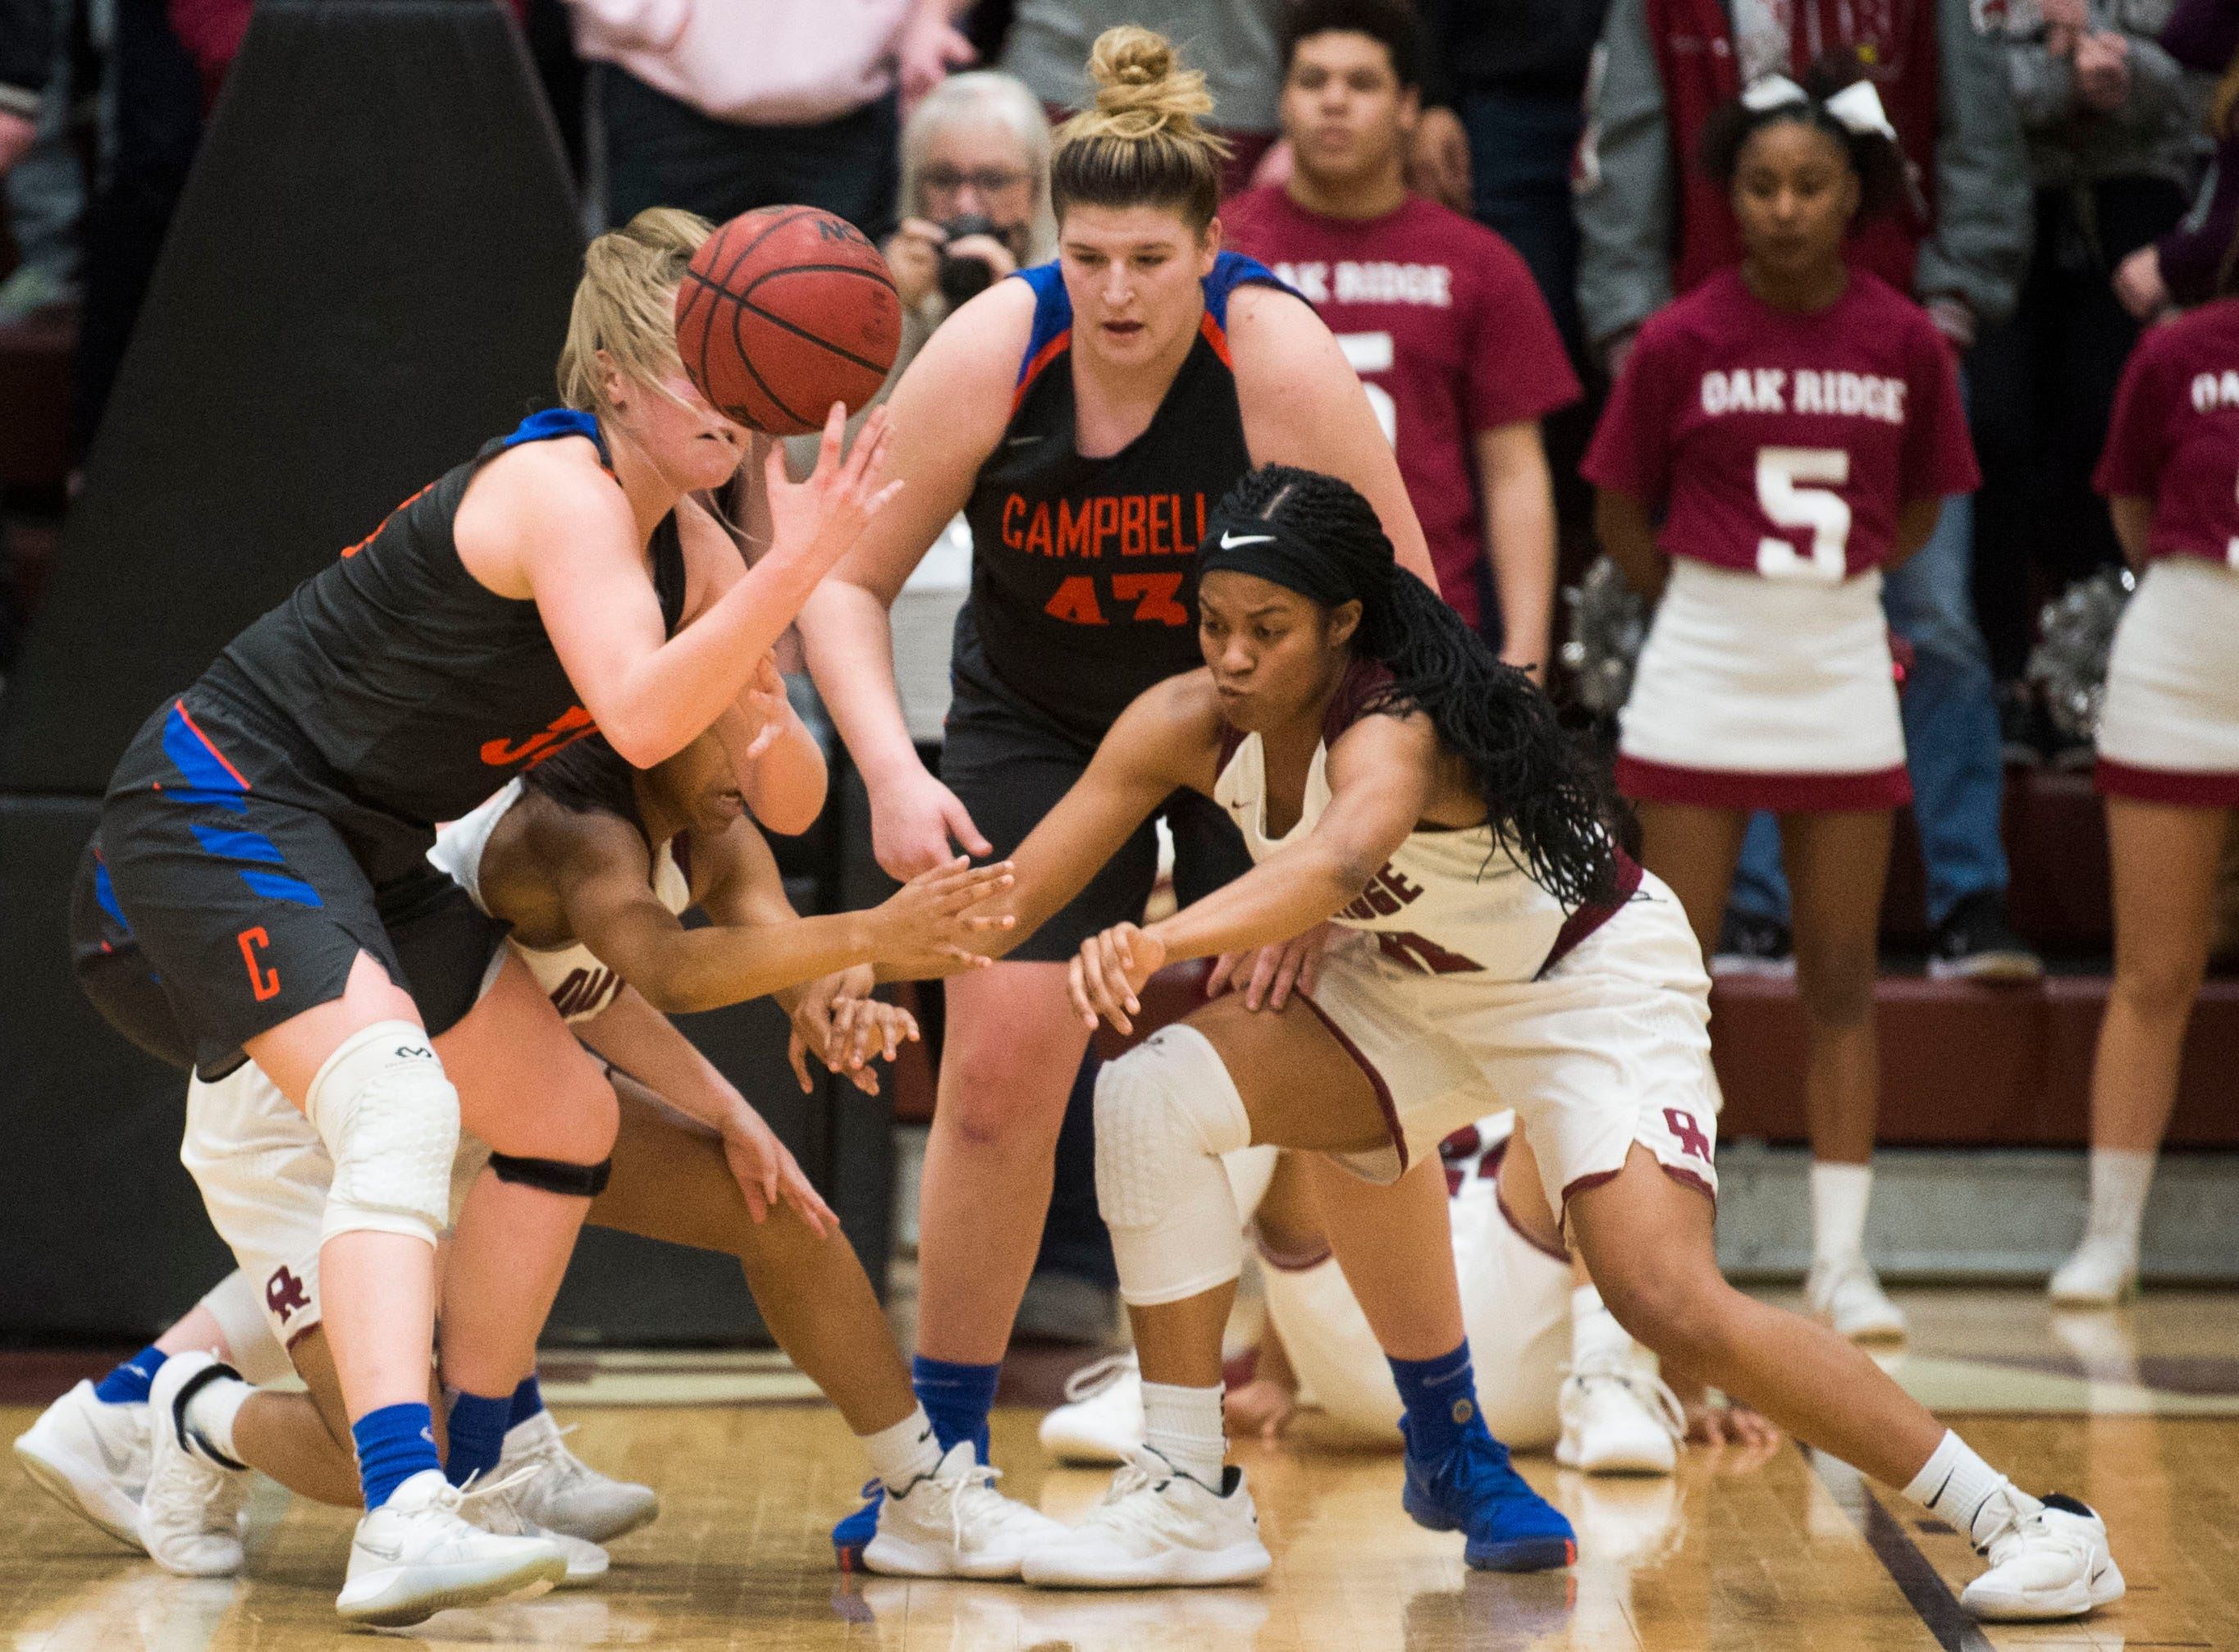 Players fight for possession of the ball during a high school basketball game between Oak Ridge and Campbell County at Oak Ridge Friday, Feb. 1, 2019.